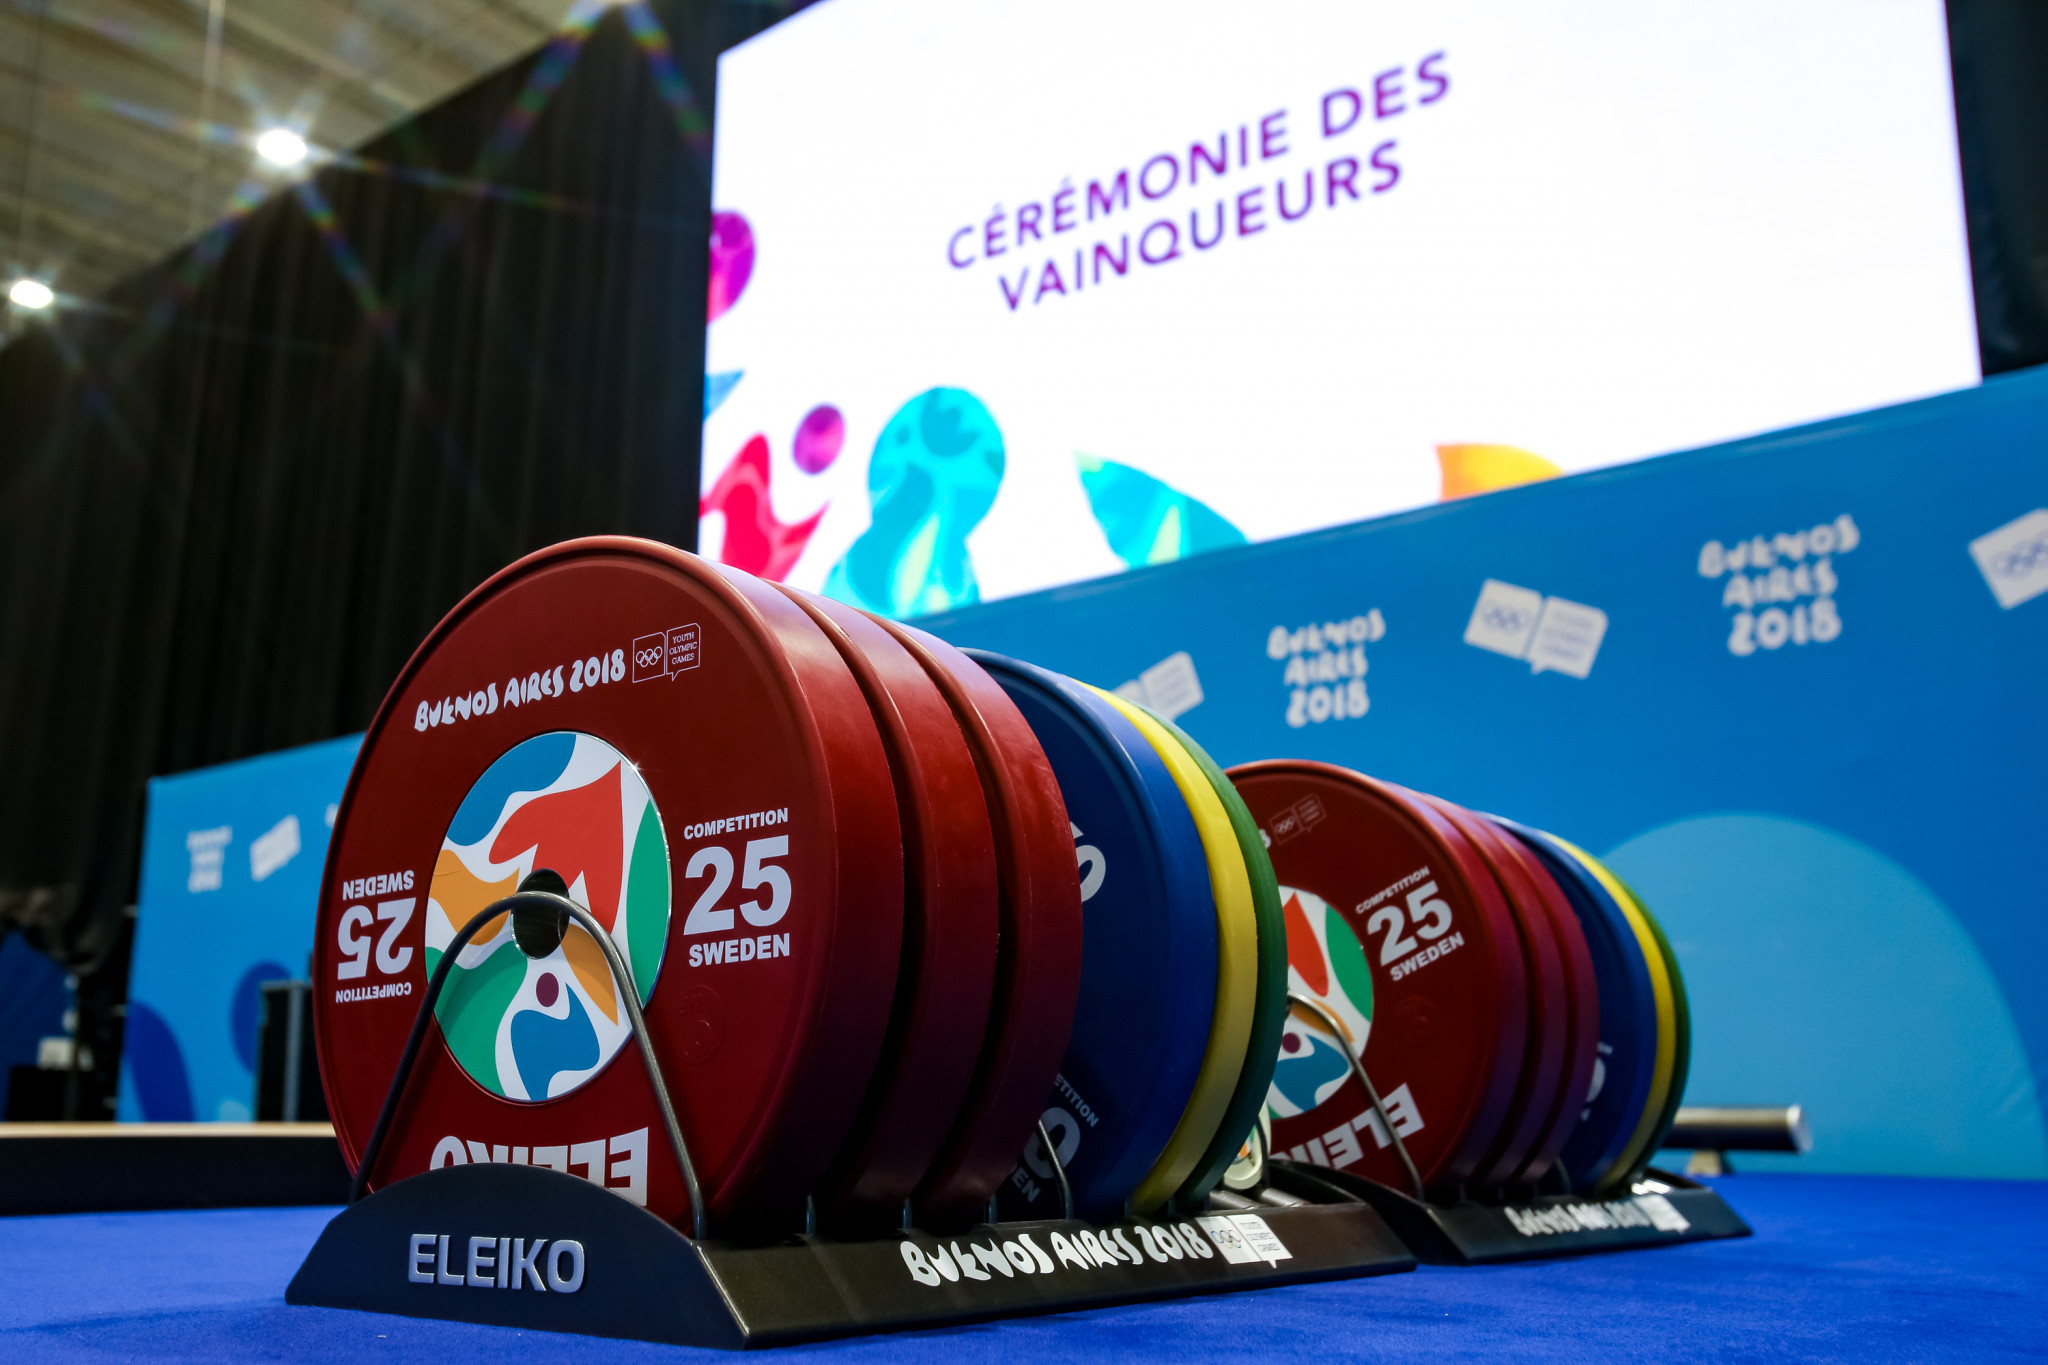 Weightlifting is a sport aiming to clean up its image ©Getty Images